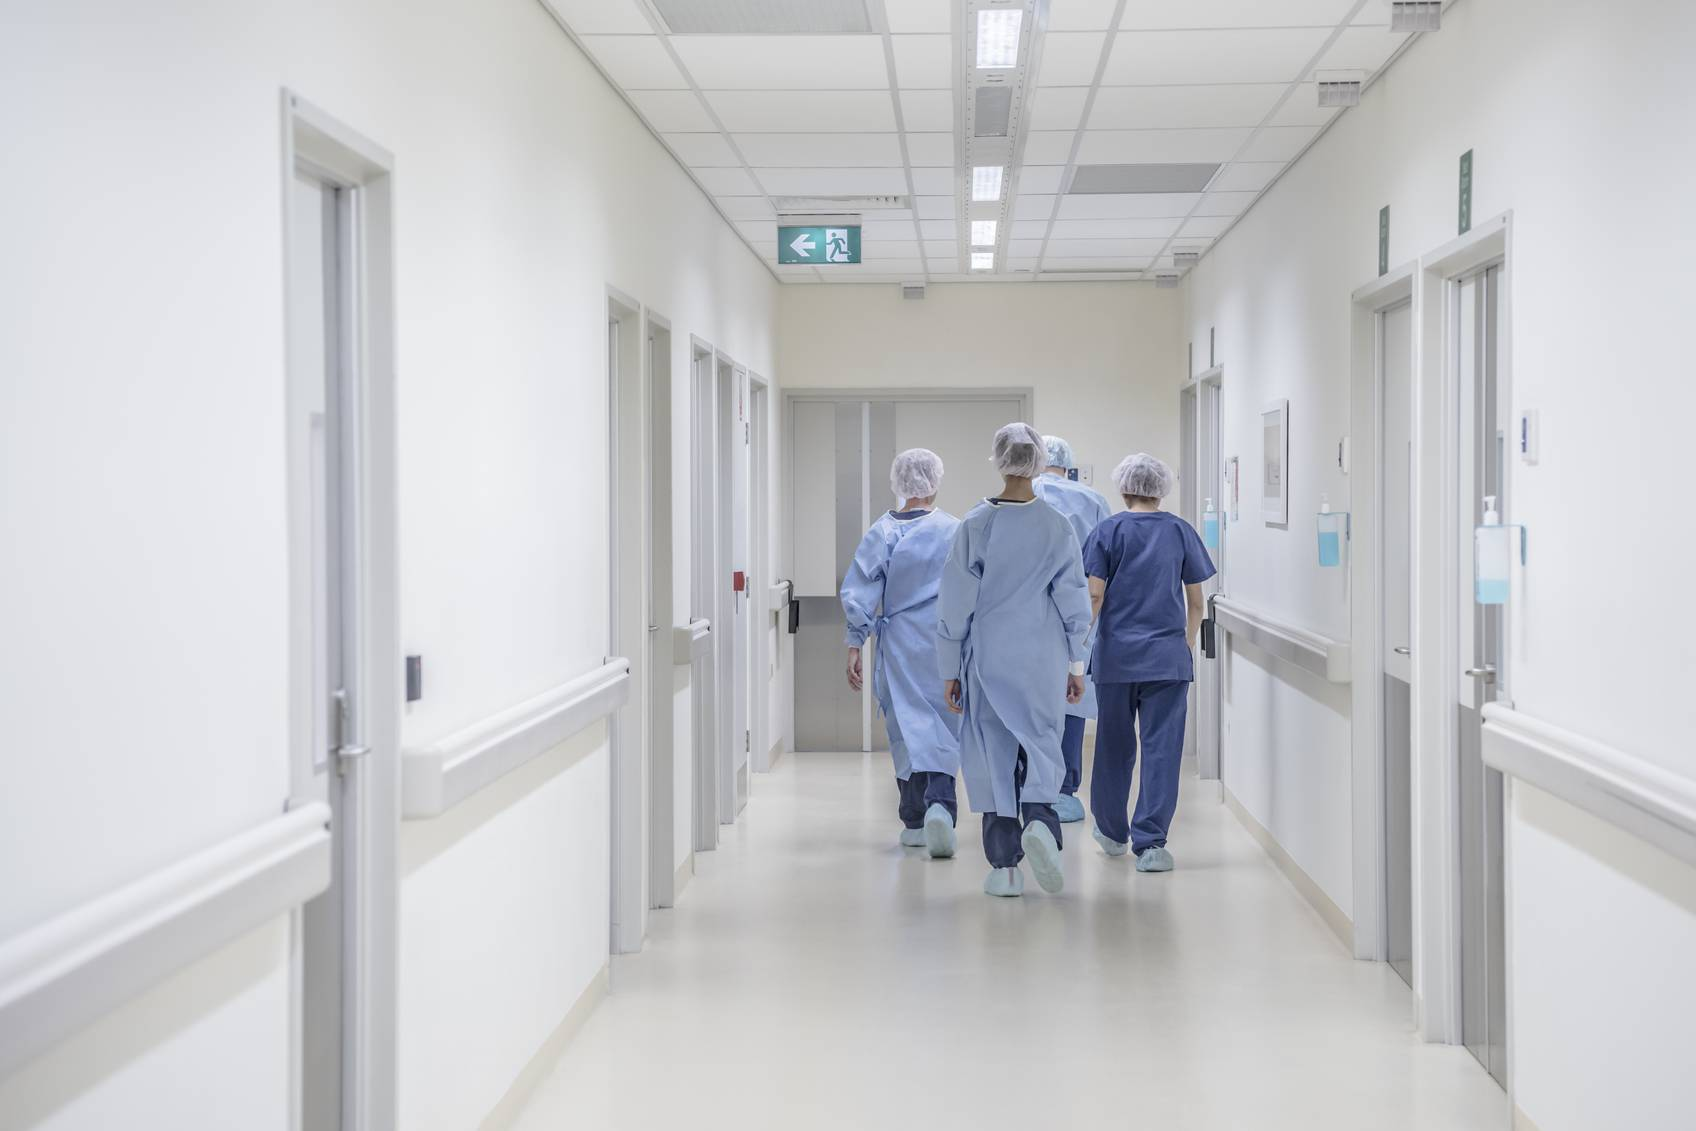 View from behind of four doctors in hospital corridor walking away from camera. Medical team in modern hospital corridor wearing surgical scrubs